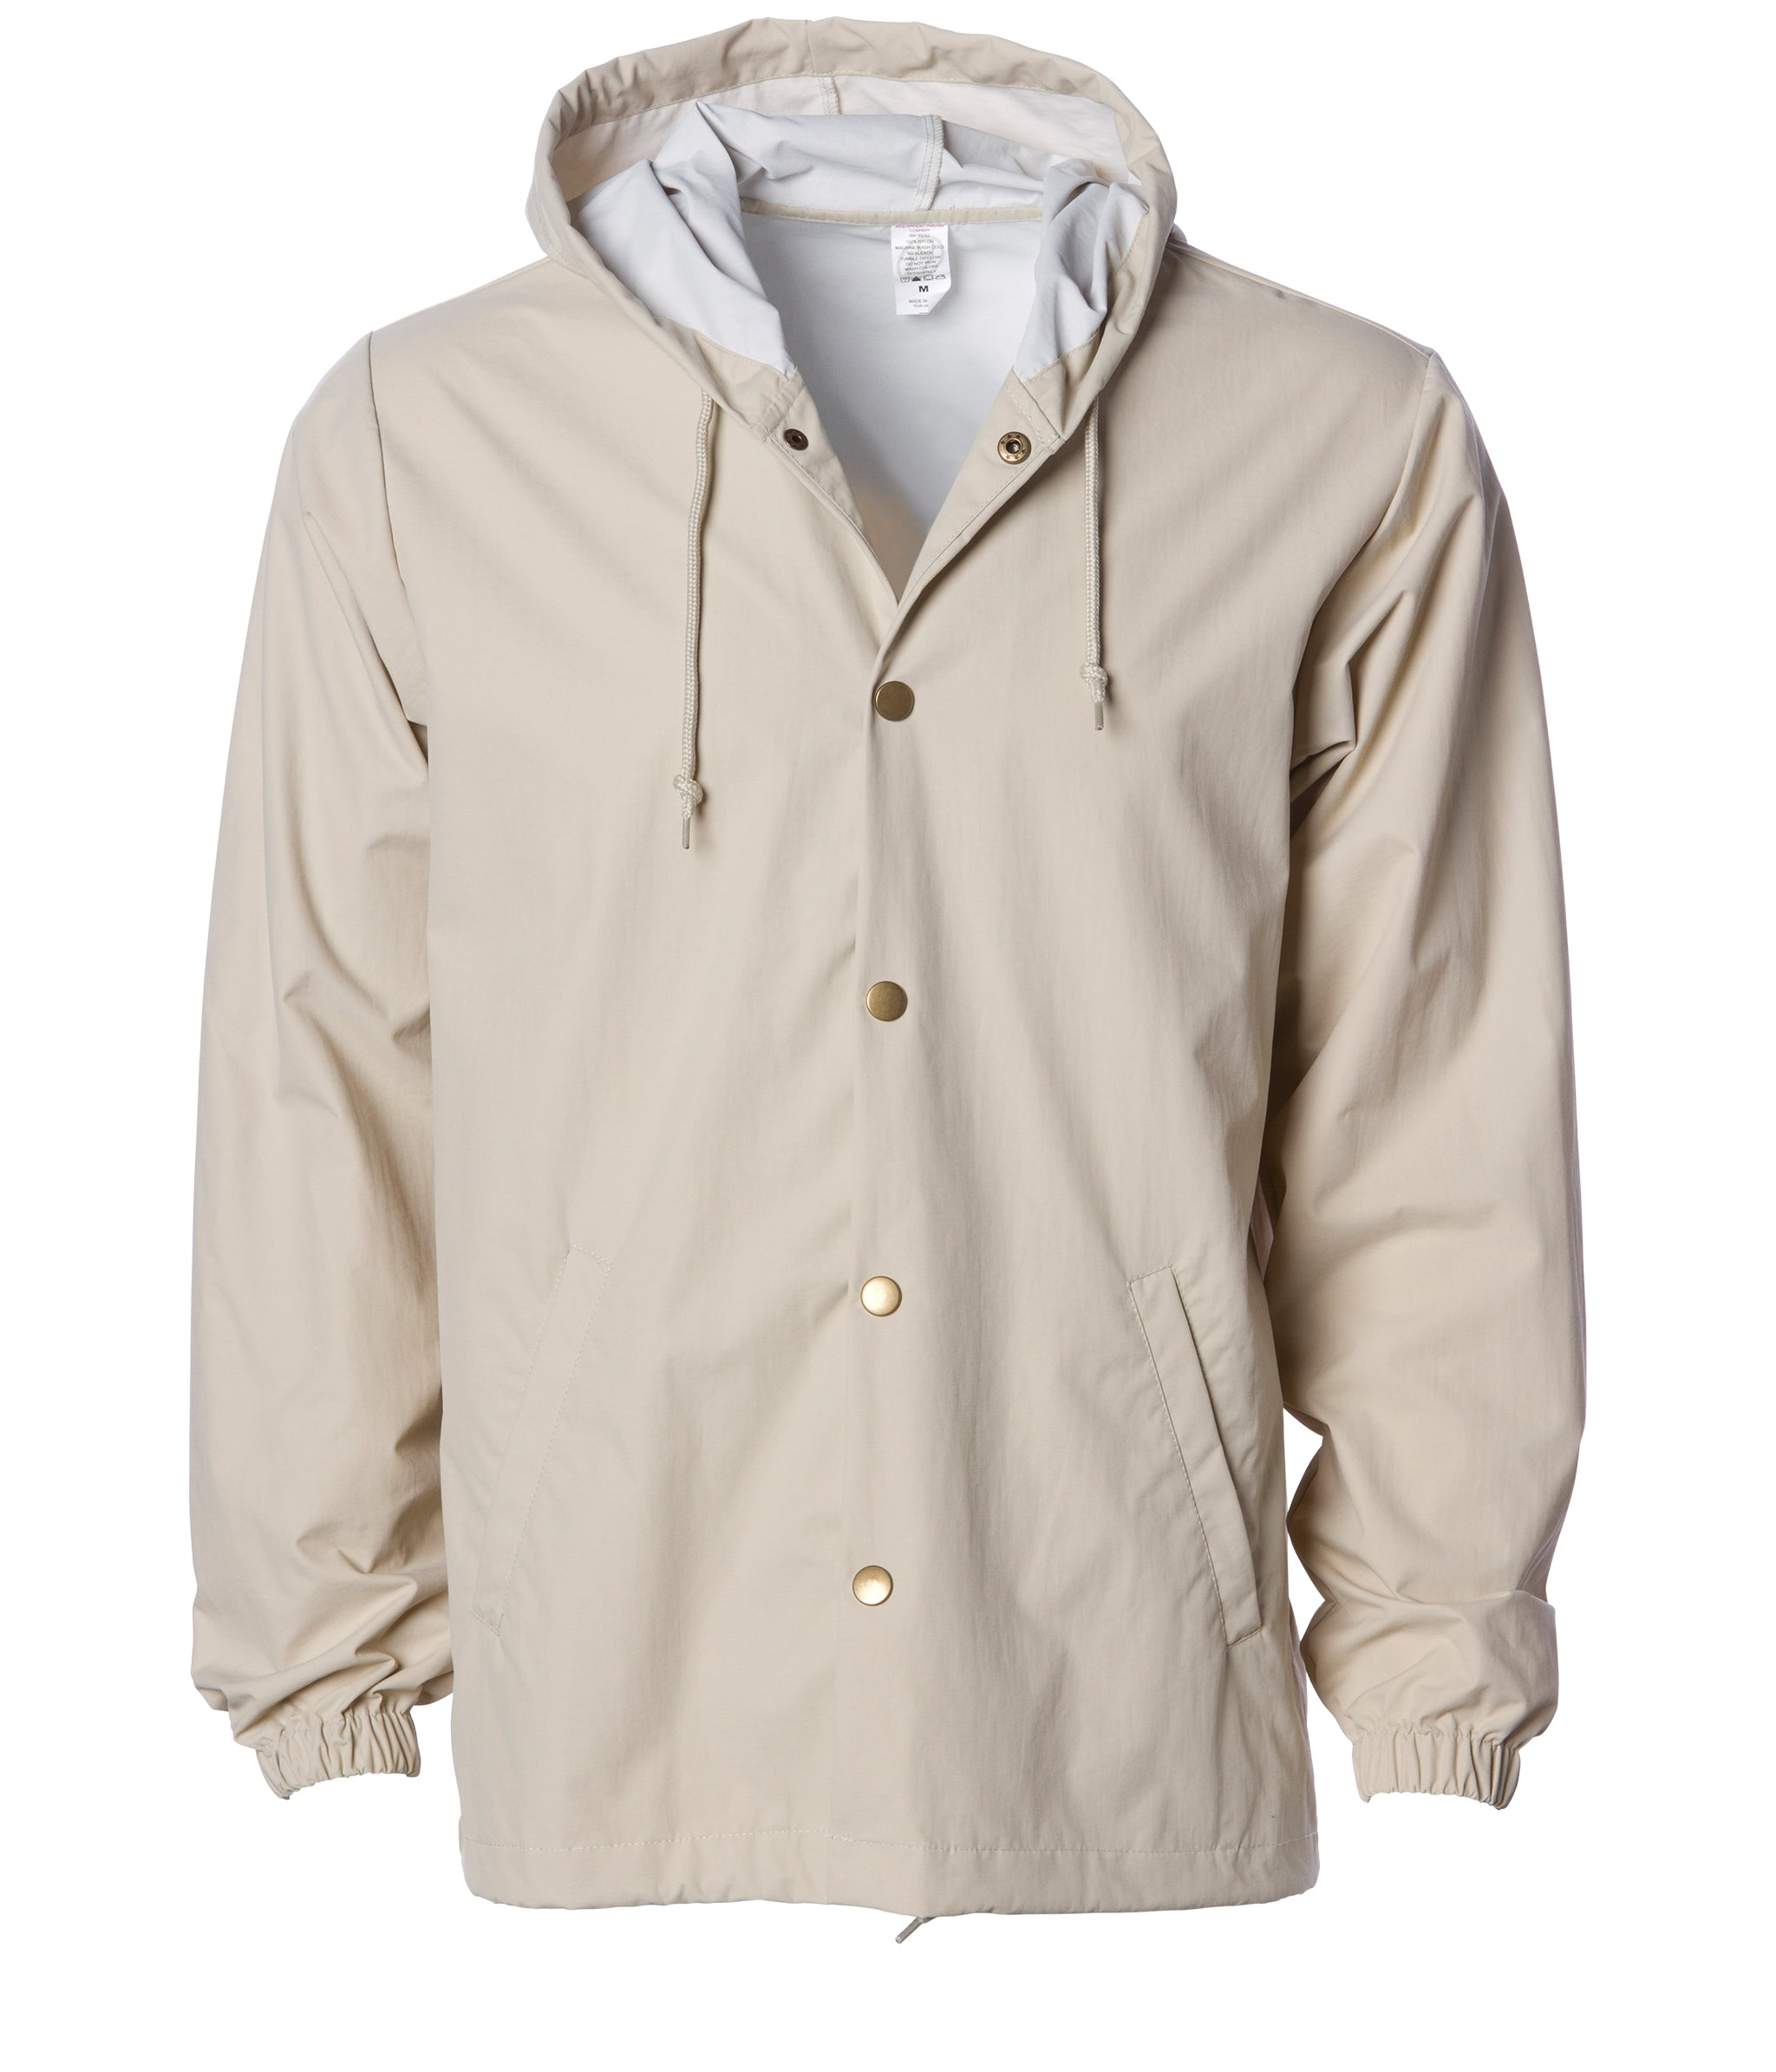 New Men/'s Snap Front Lined Windbreaker Water Proof Nylon Coaches Jacket Style